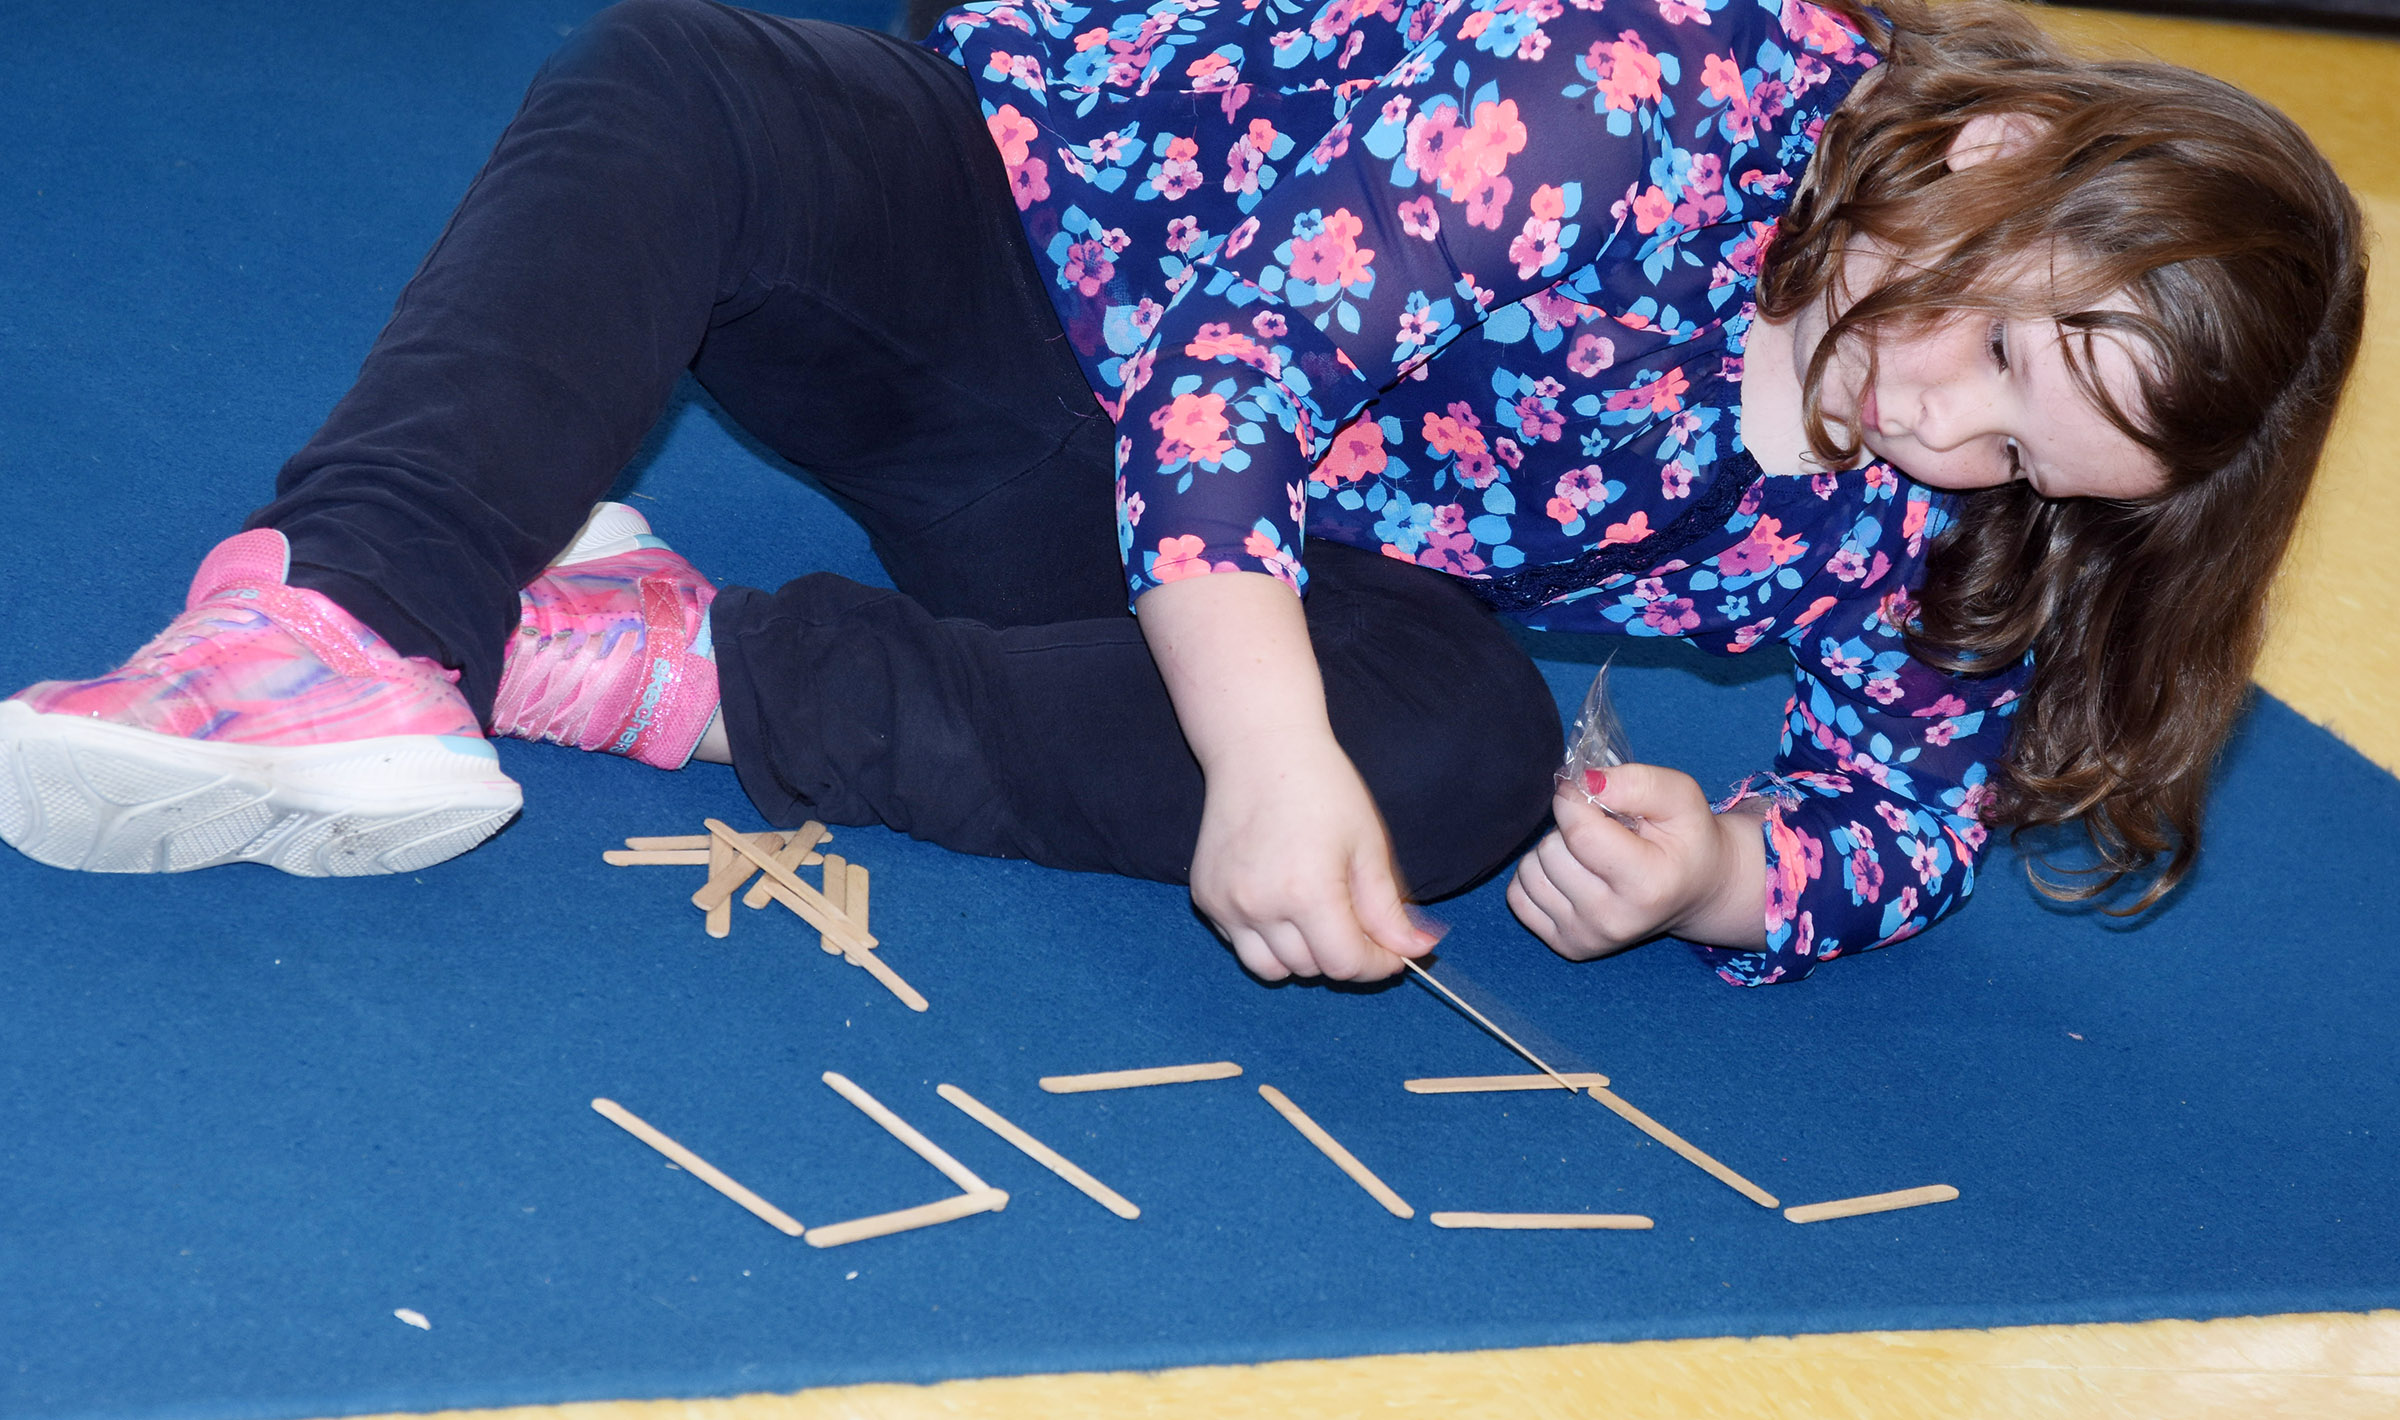 CES third-grader Kierra Maupin writes a rhythm with Popsicle sticks.